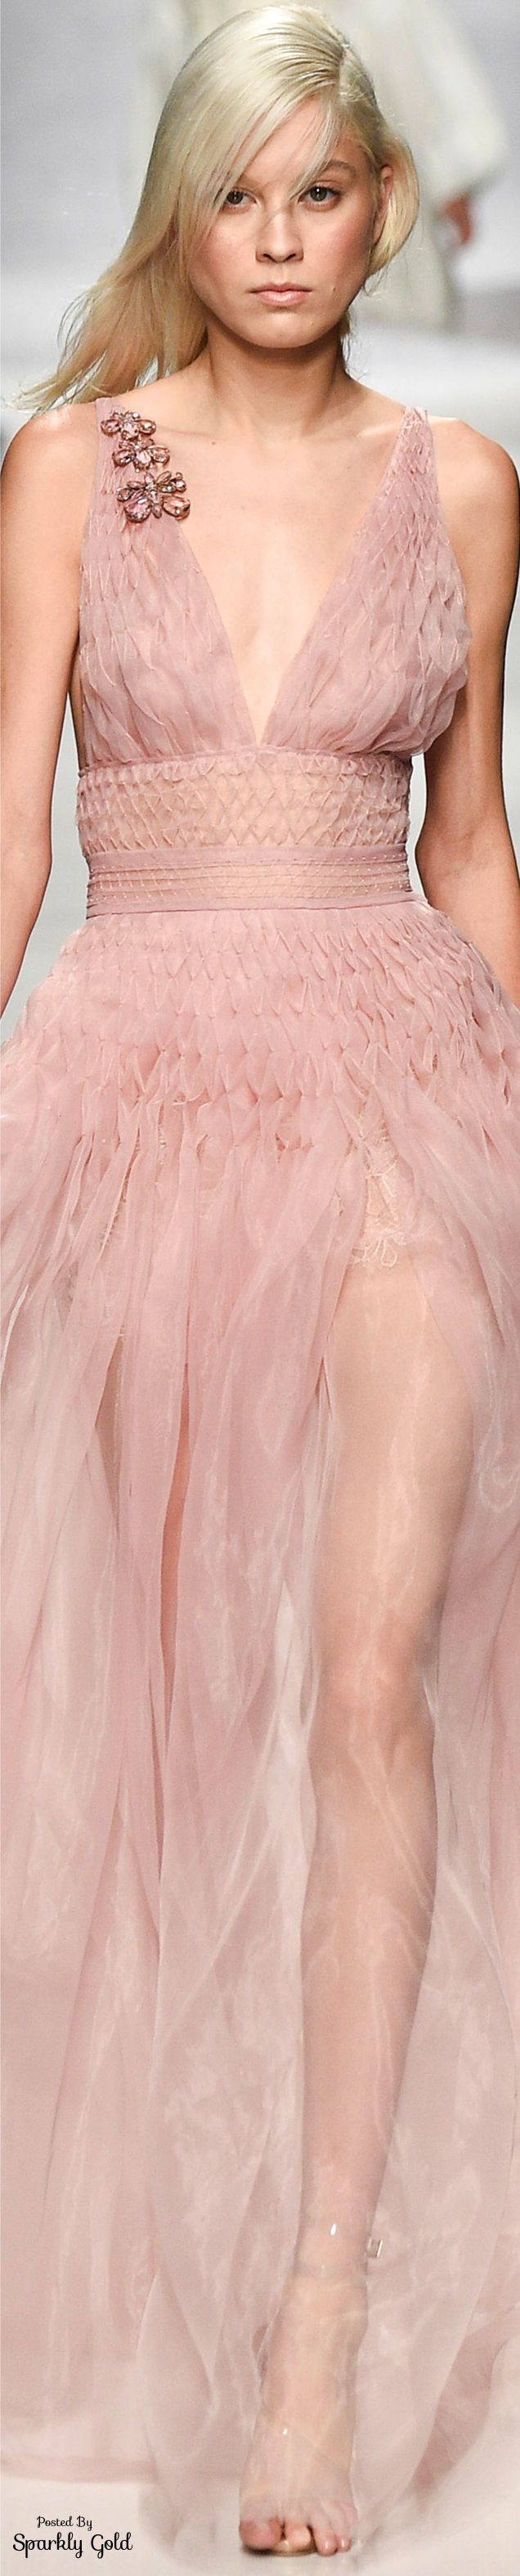 Ermanno Scervino S-17 RTW: pale pink gown. | Smocking y capitoné ...